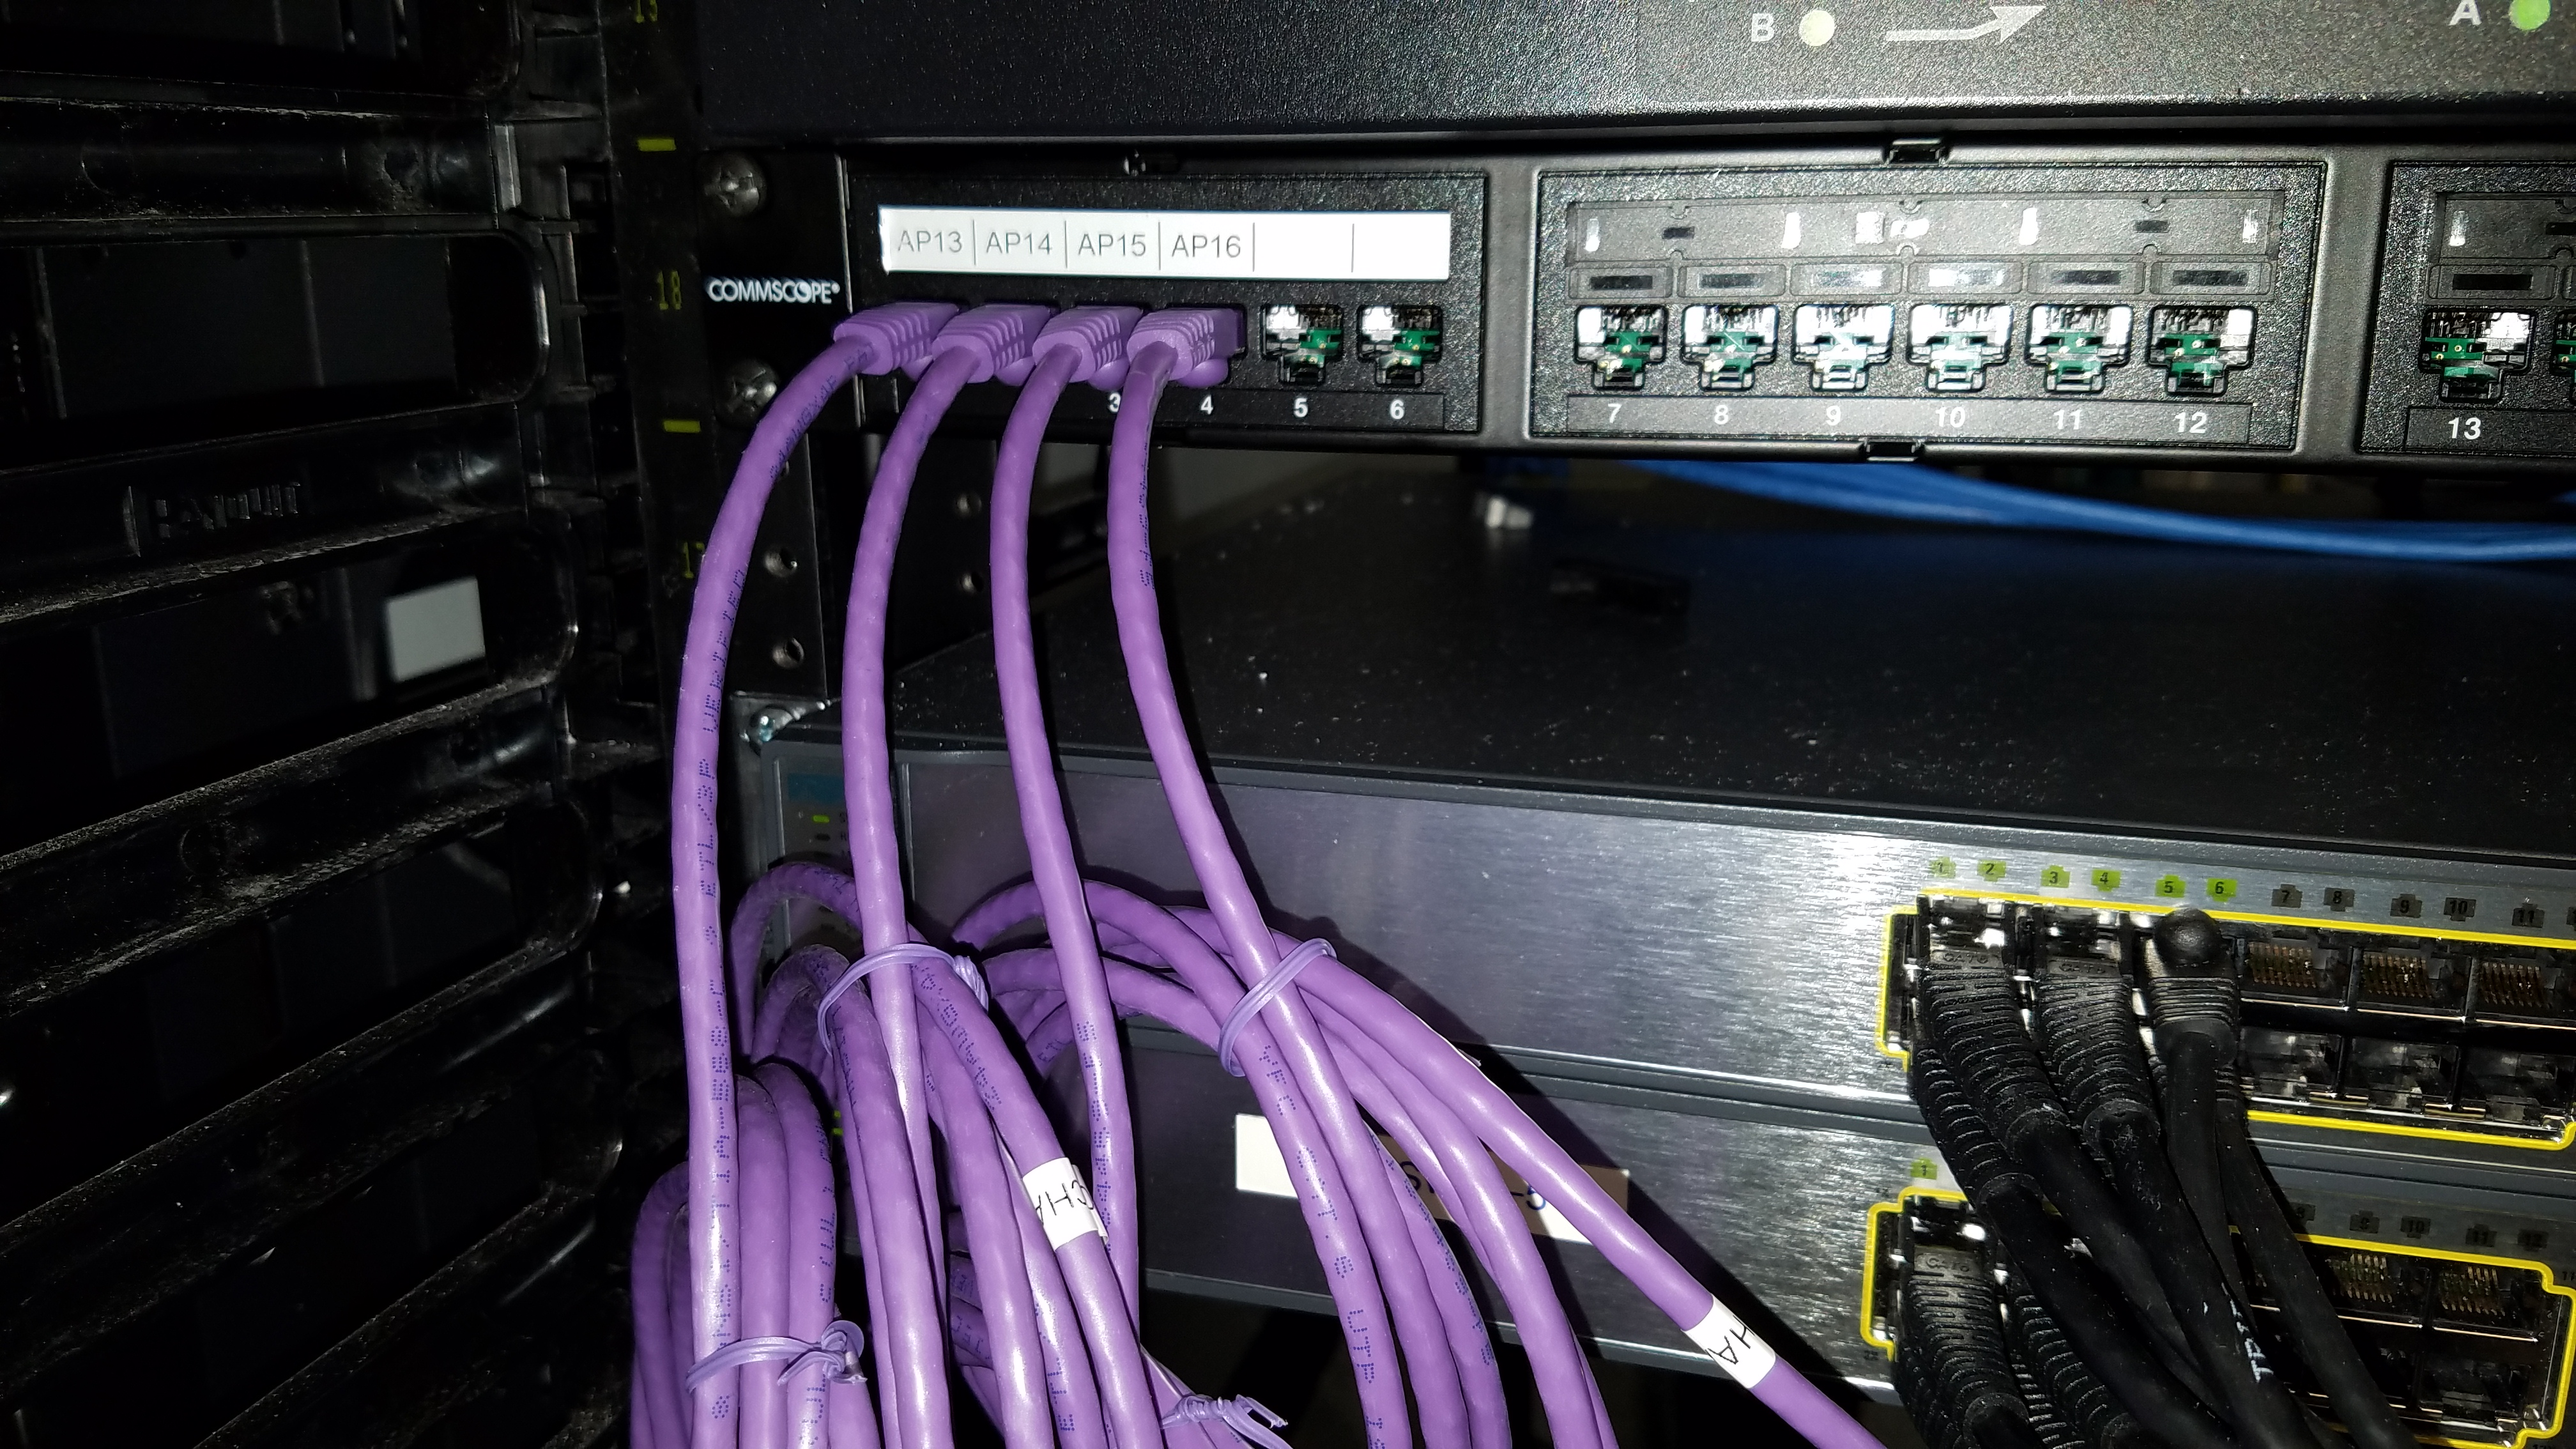 IDF 5th floor a enterprise cable services expert wireless network infrastructure idf wiring at edmiracle.co